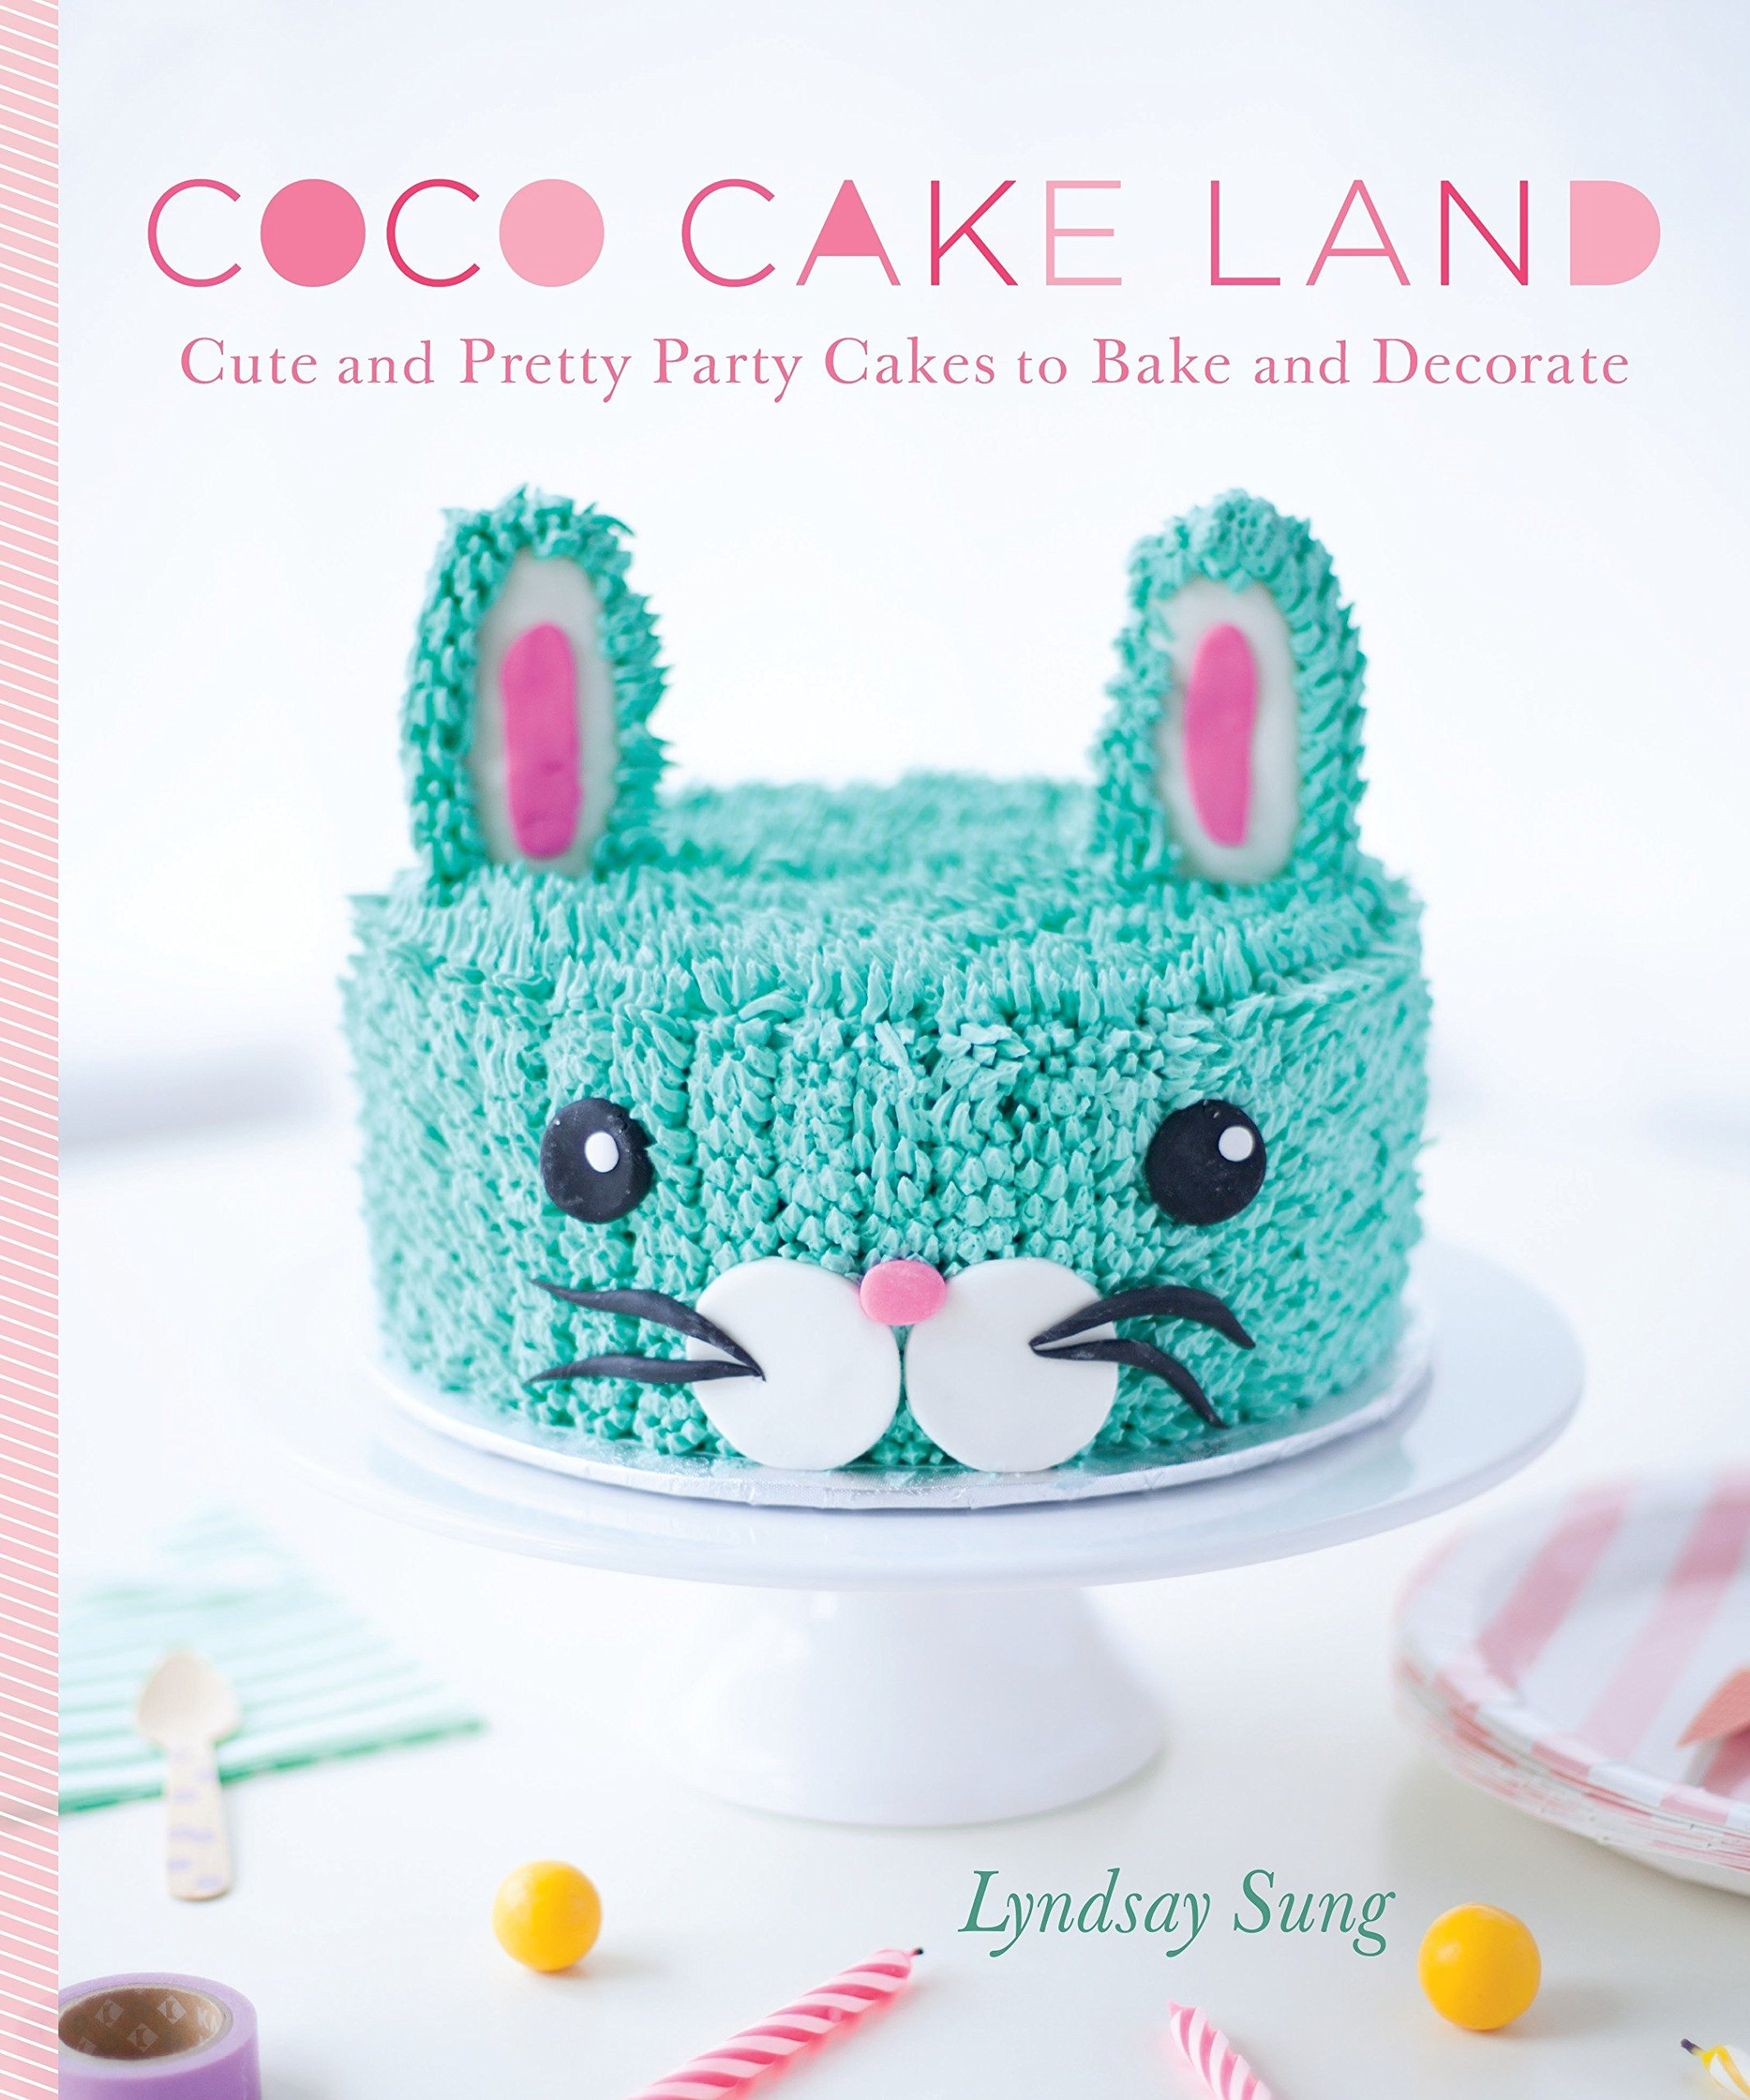 Coco Cake Land Cute And Pretty Party Cakes To Bake Decorate Amazonde Lyndsay Sung Fremdsprachige Bucher